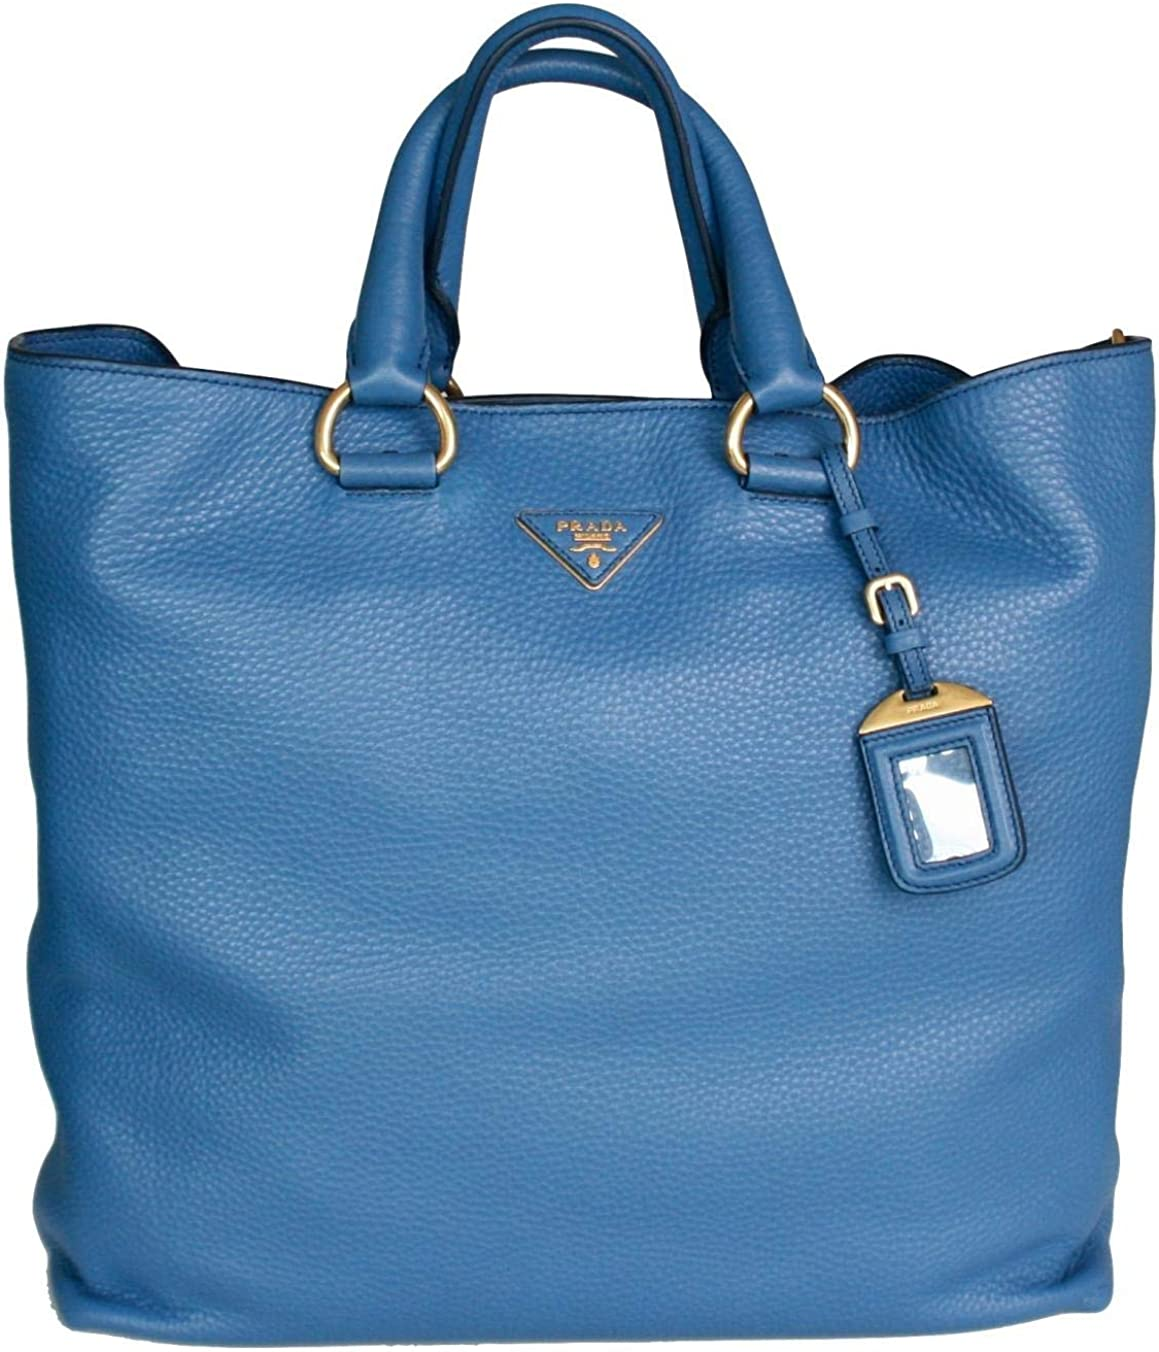 Prada Women's BN1713 BBE F0215 Blue Leather Evening Purse